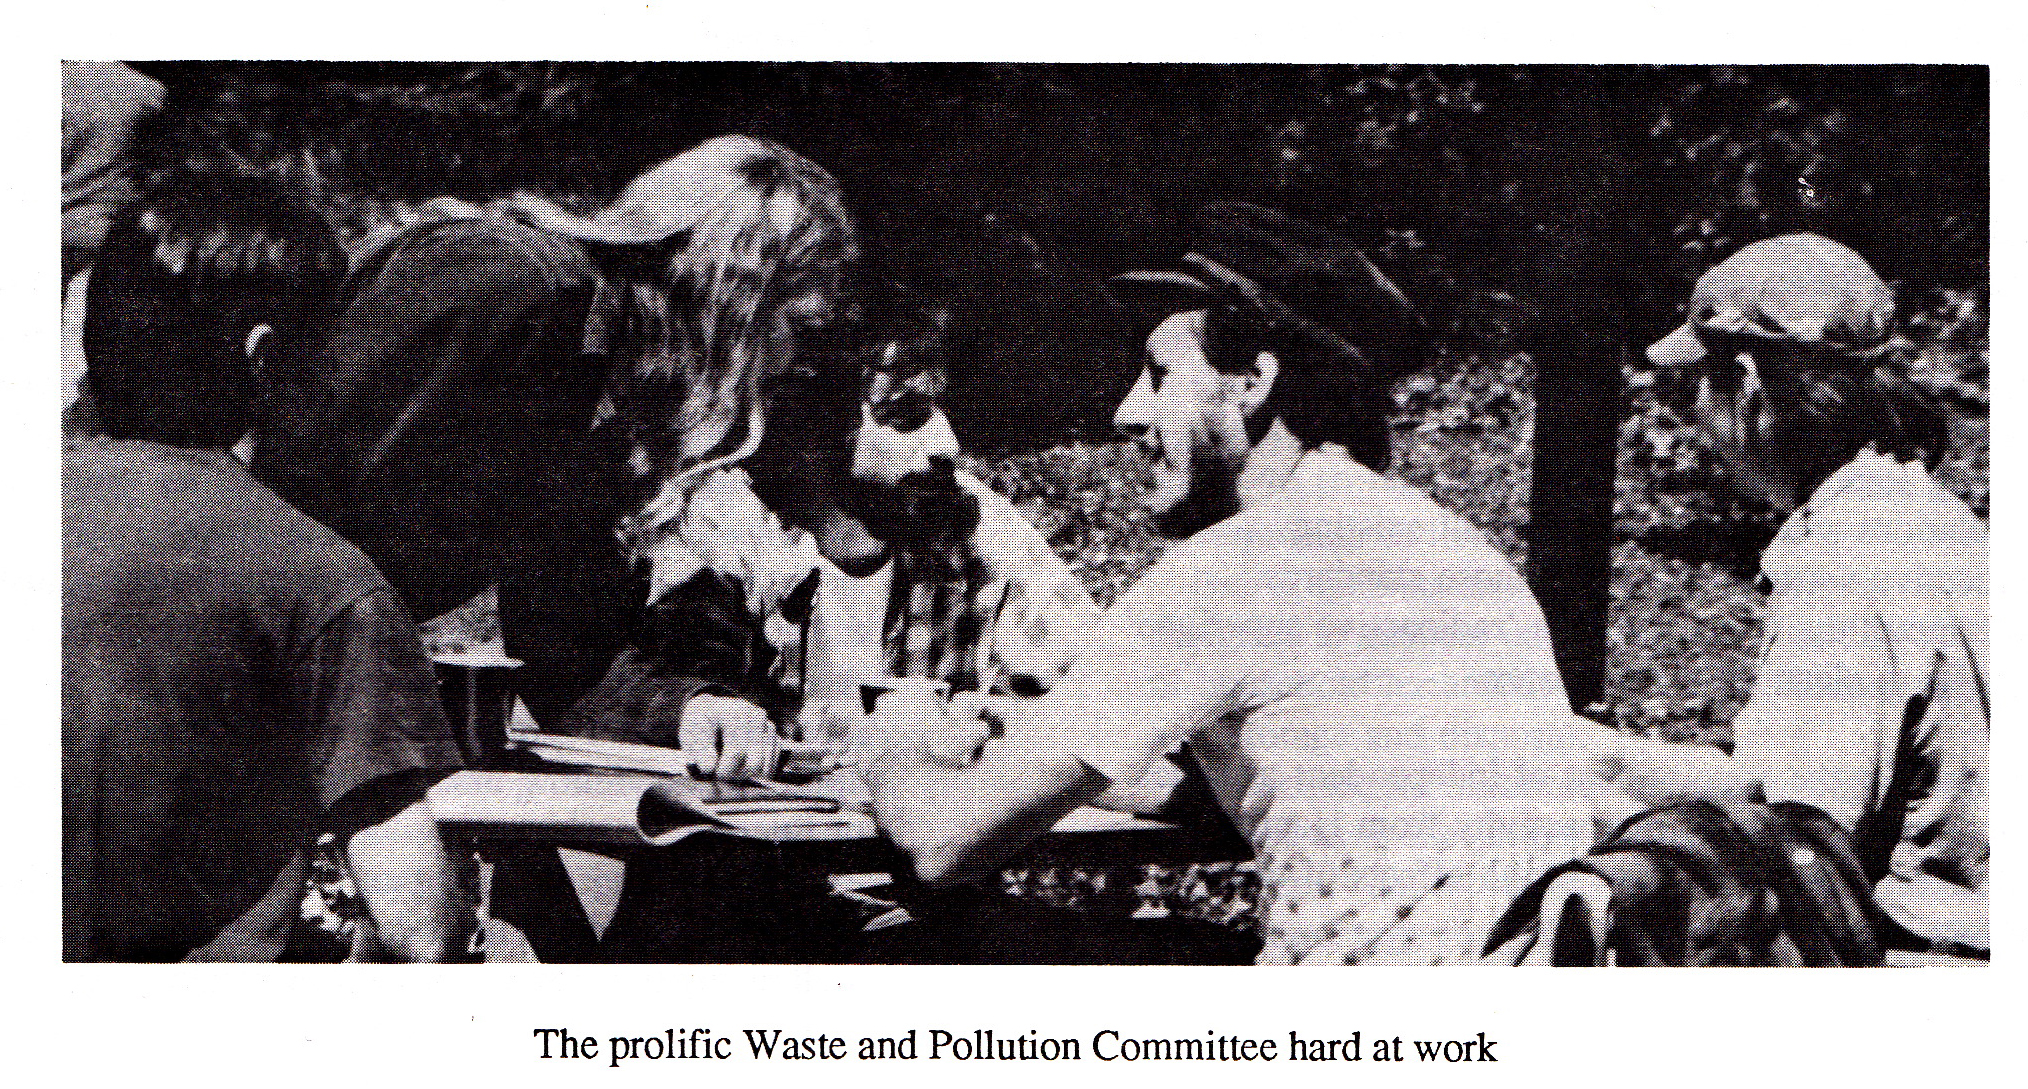 The prolific Waste and Pollution Committee hard at work